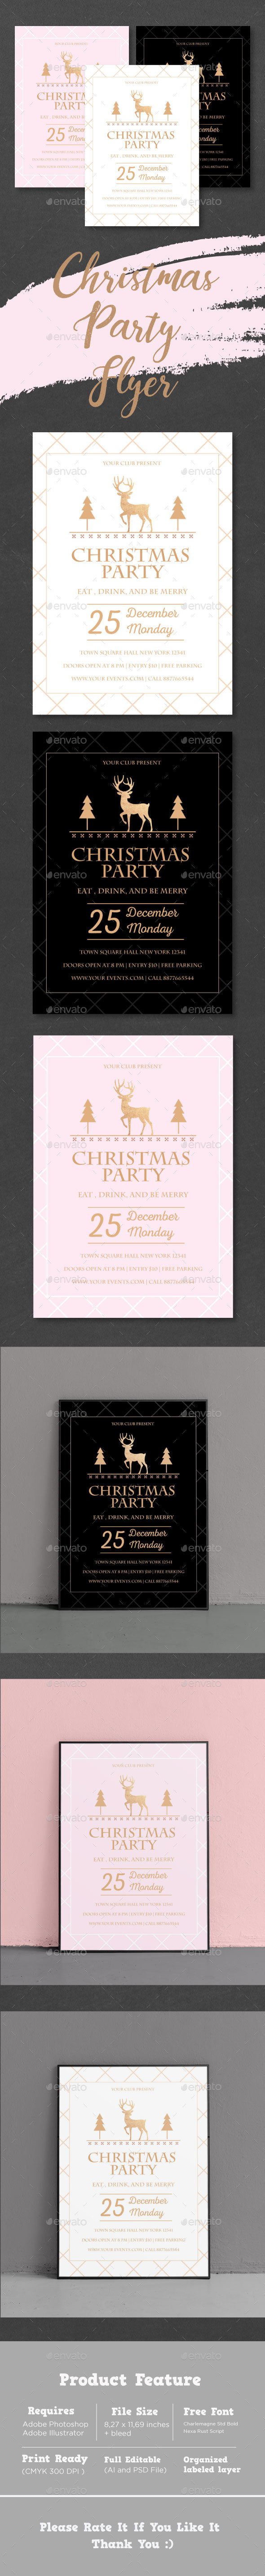 Christmas Party Flyer 3 in 1 - Events Flyers